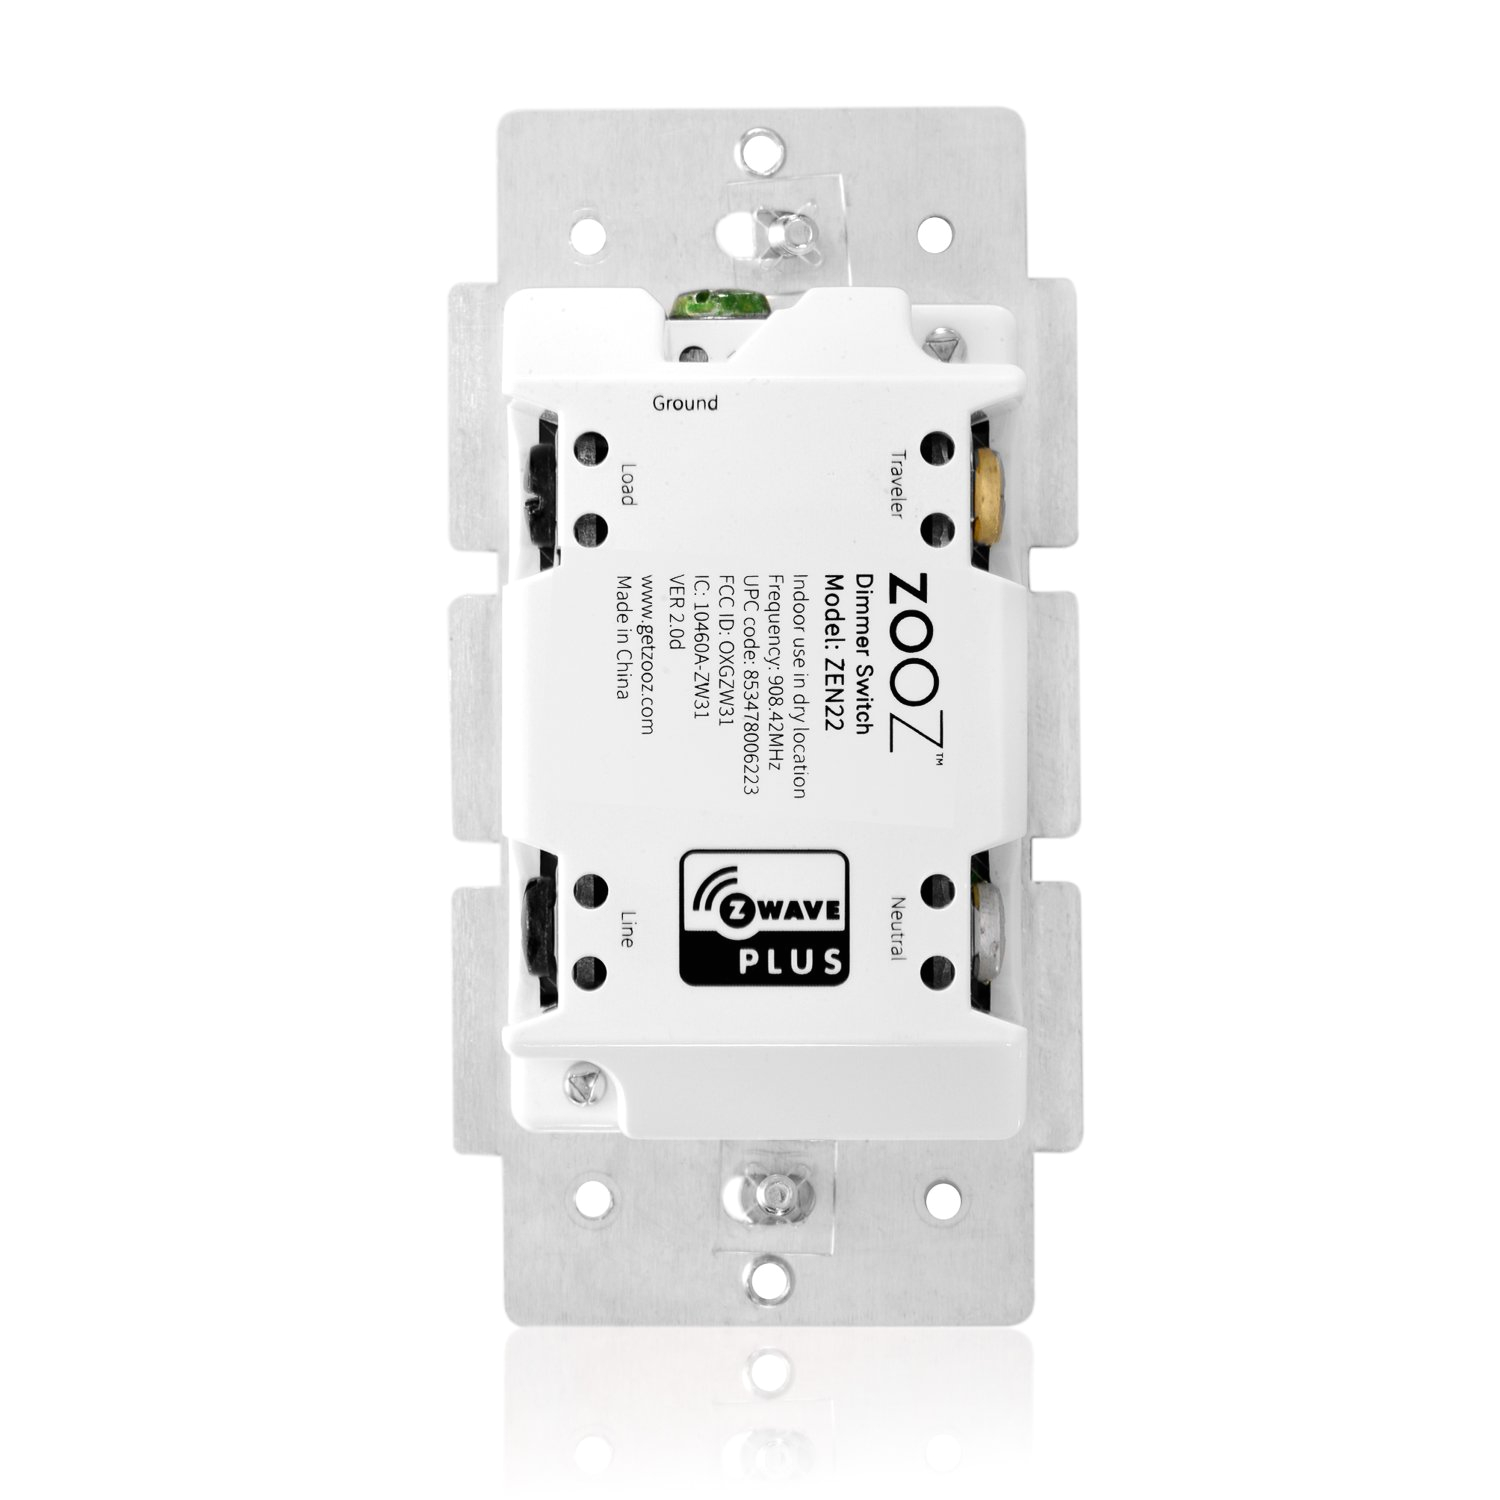 zooz z wave plus dimmer light switch zen22 ver 2 0 back view